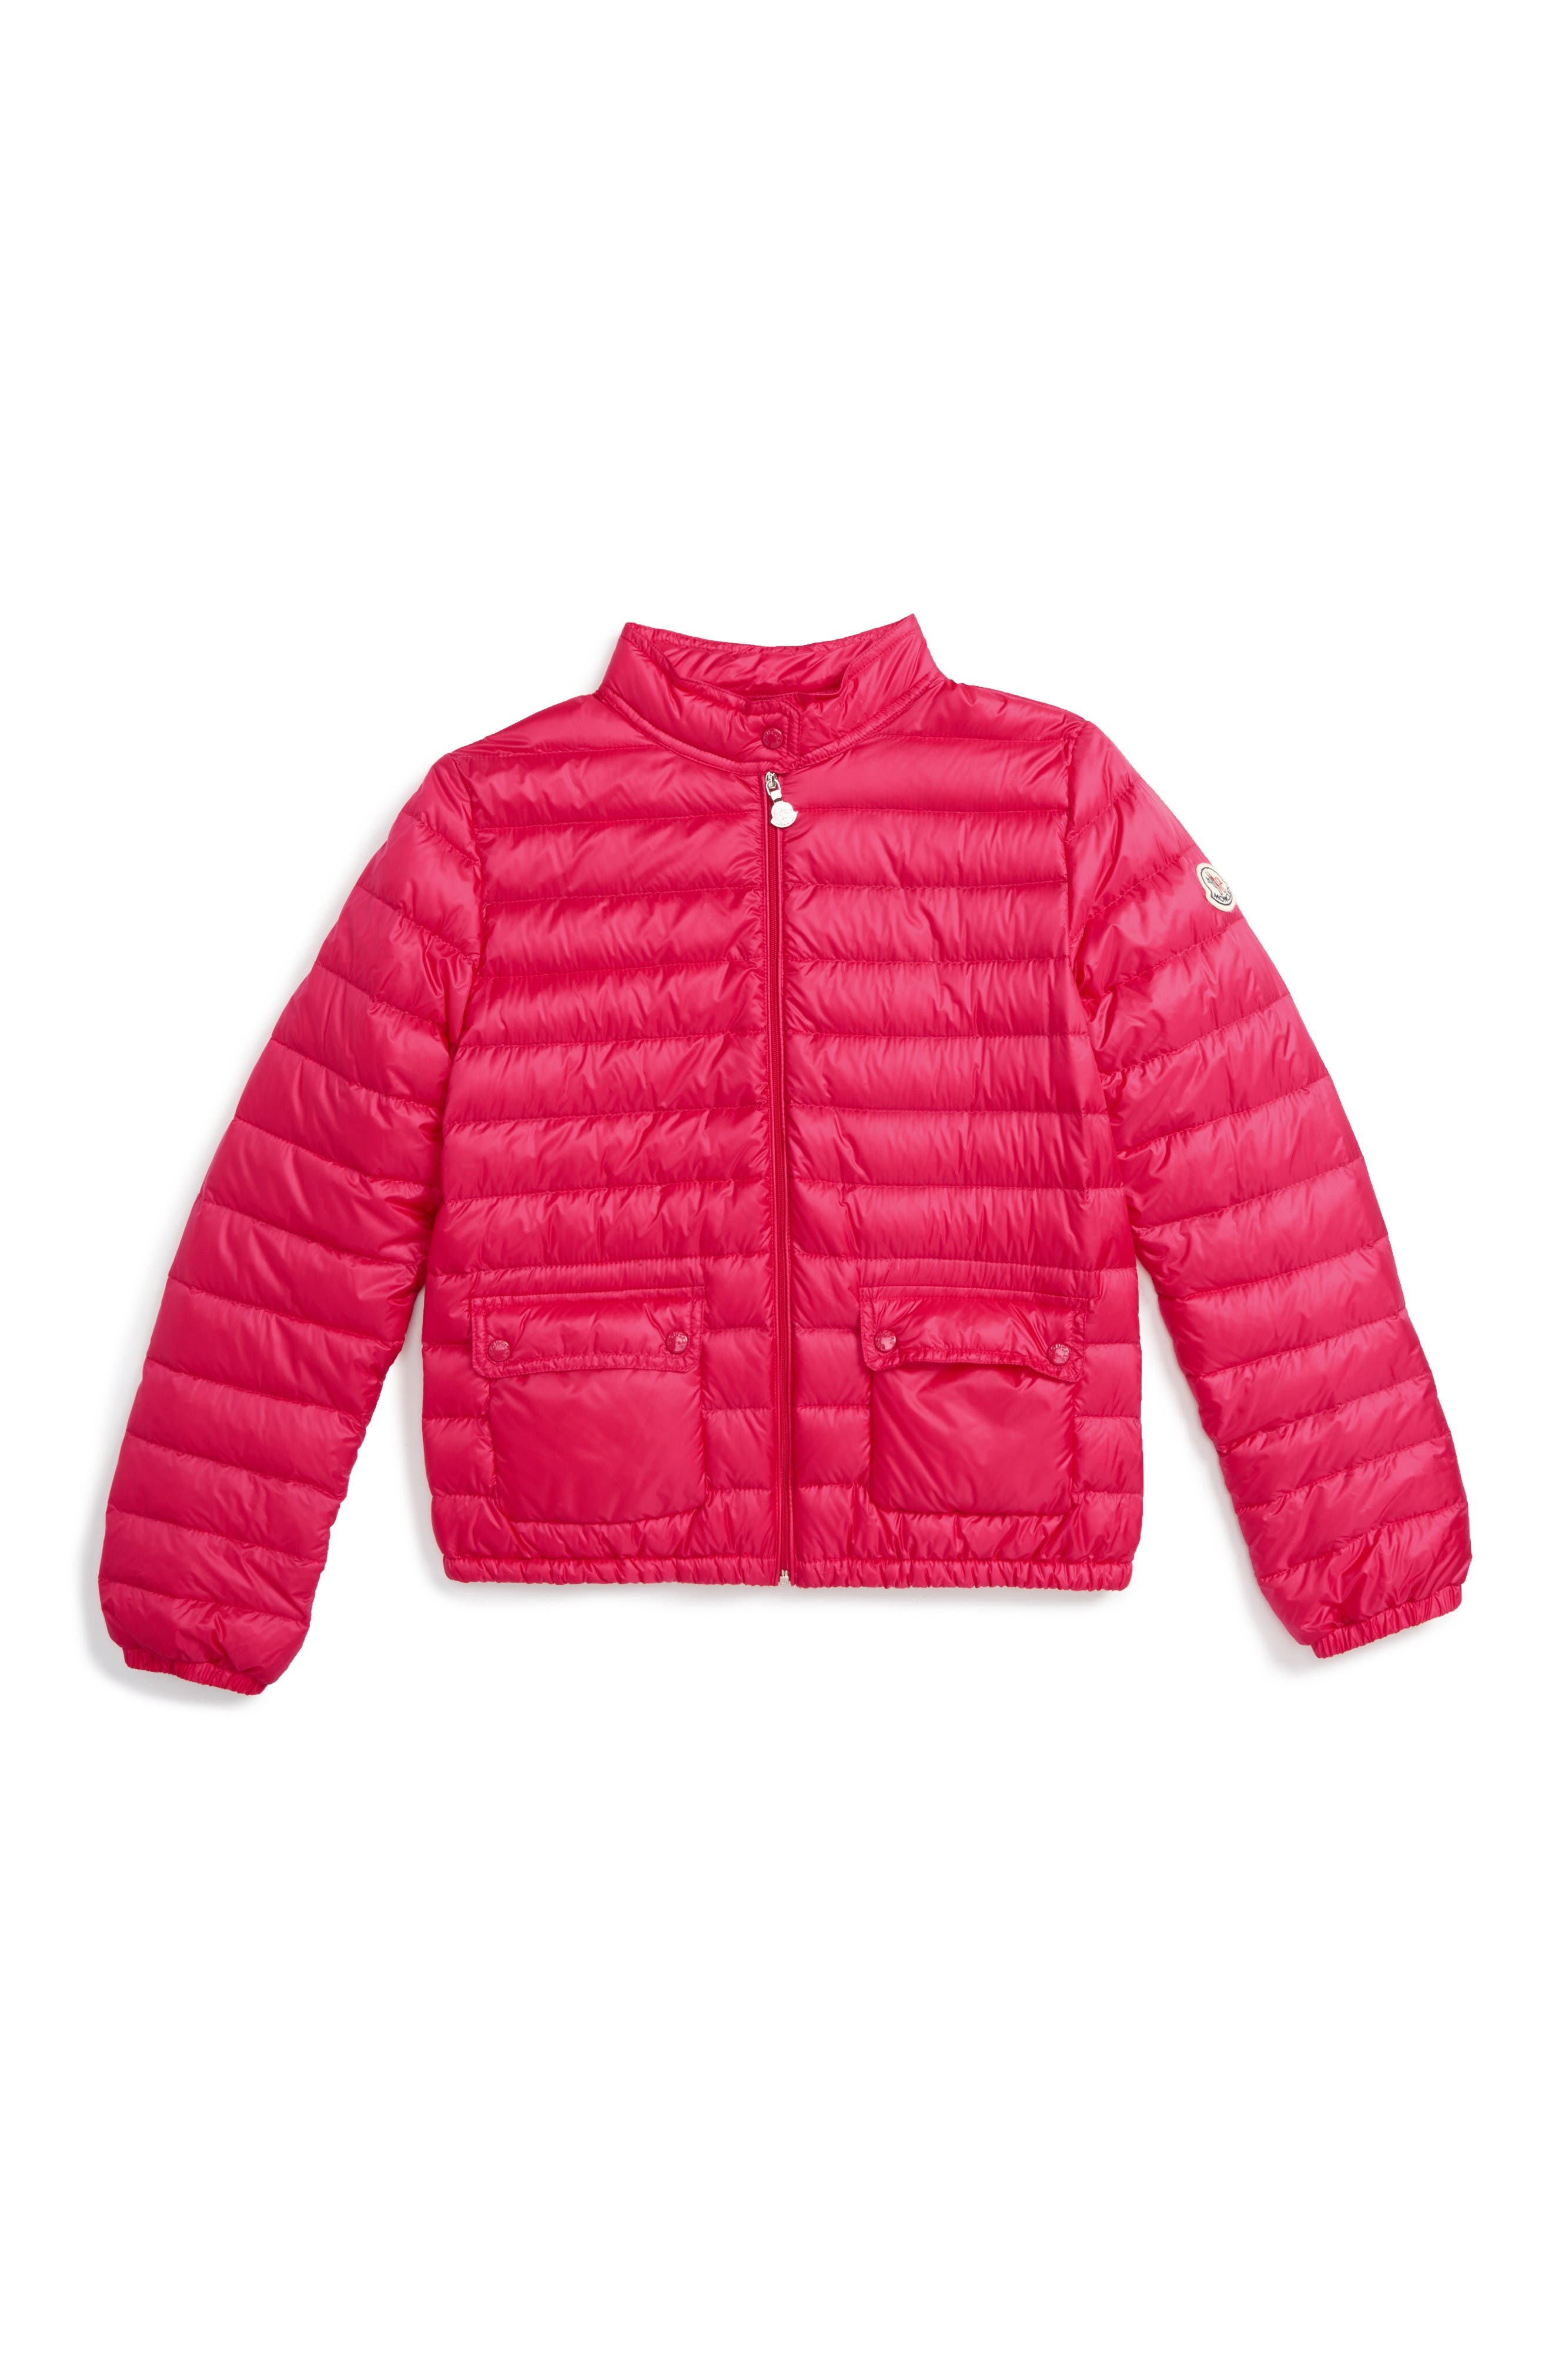 Lans Water Resistant Down Jacket,                             Main thumbnail 1, color,                             Fuchsia